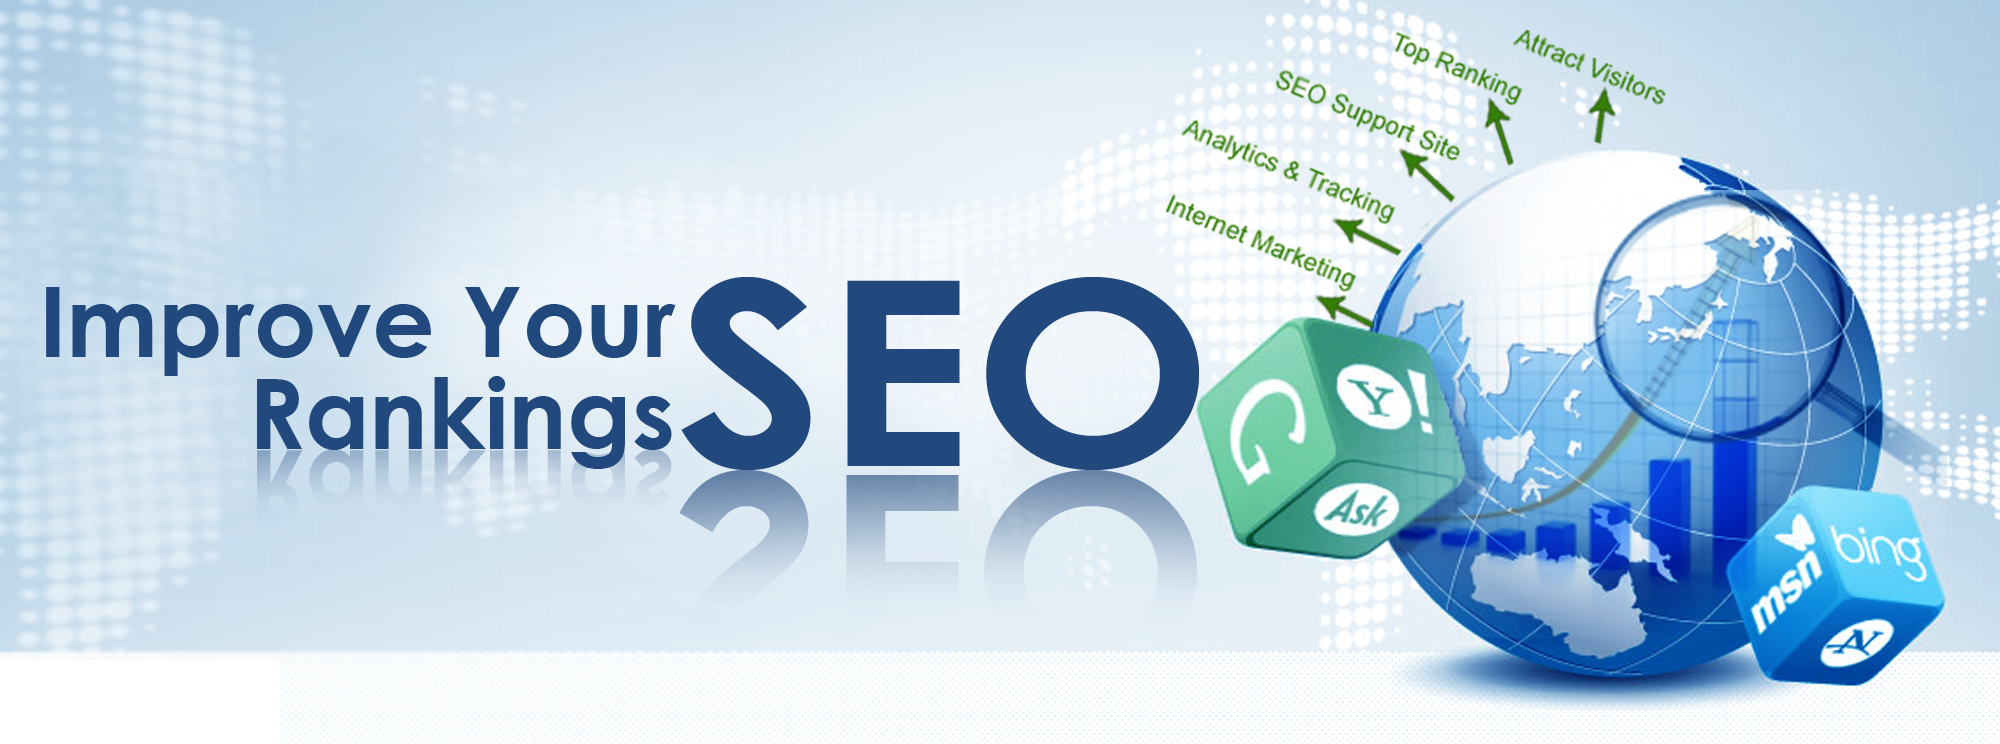 SEO Marketing From the Finest SEO Service Providers